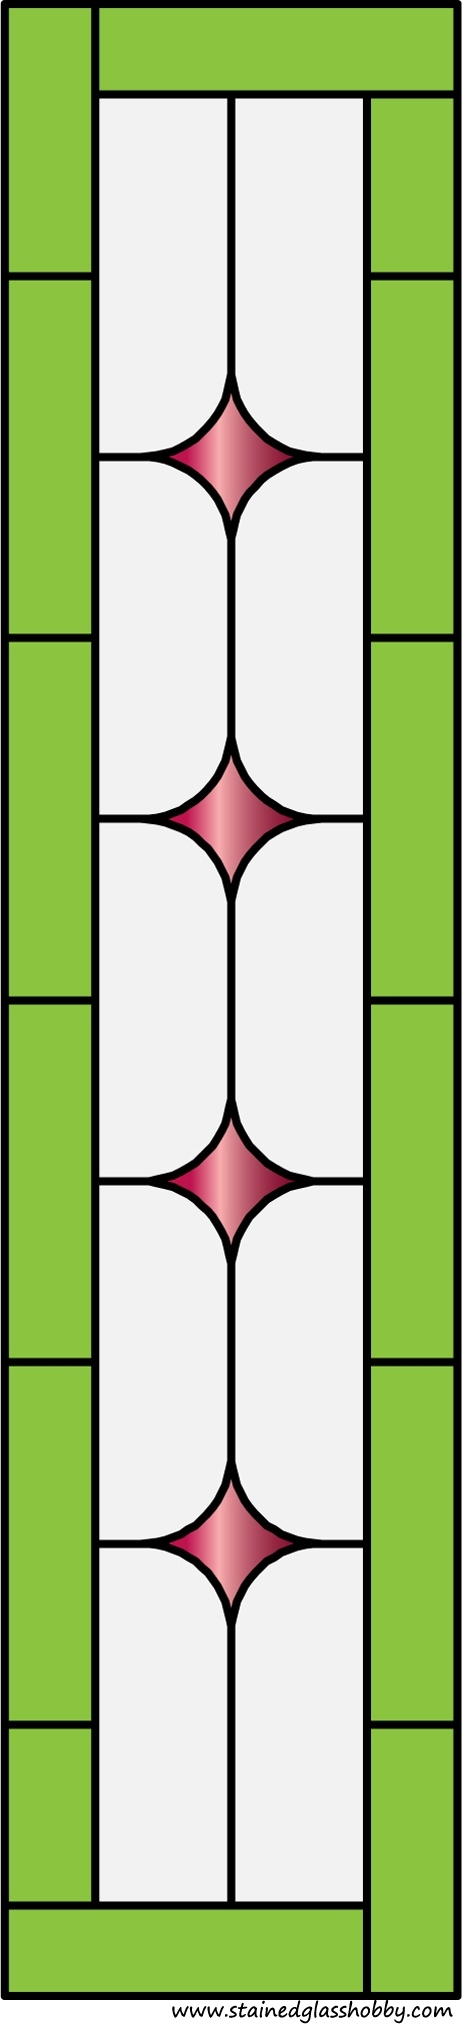 Rectangular Panel For Stained Glass 4